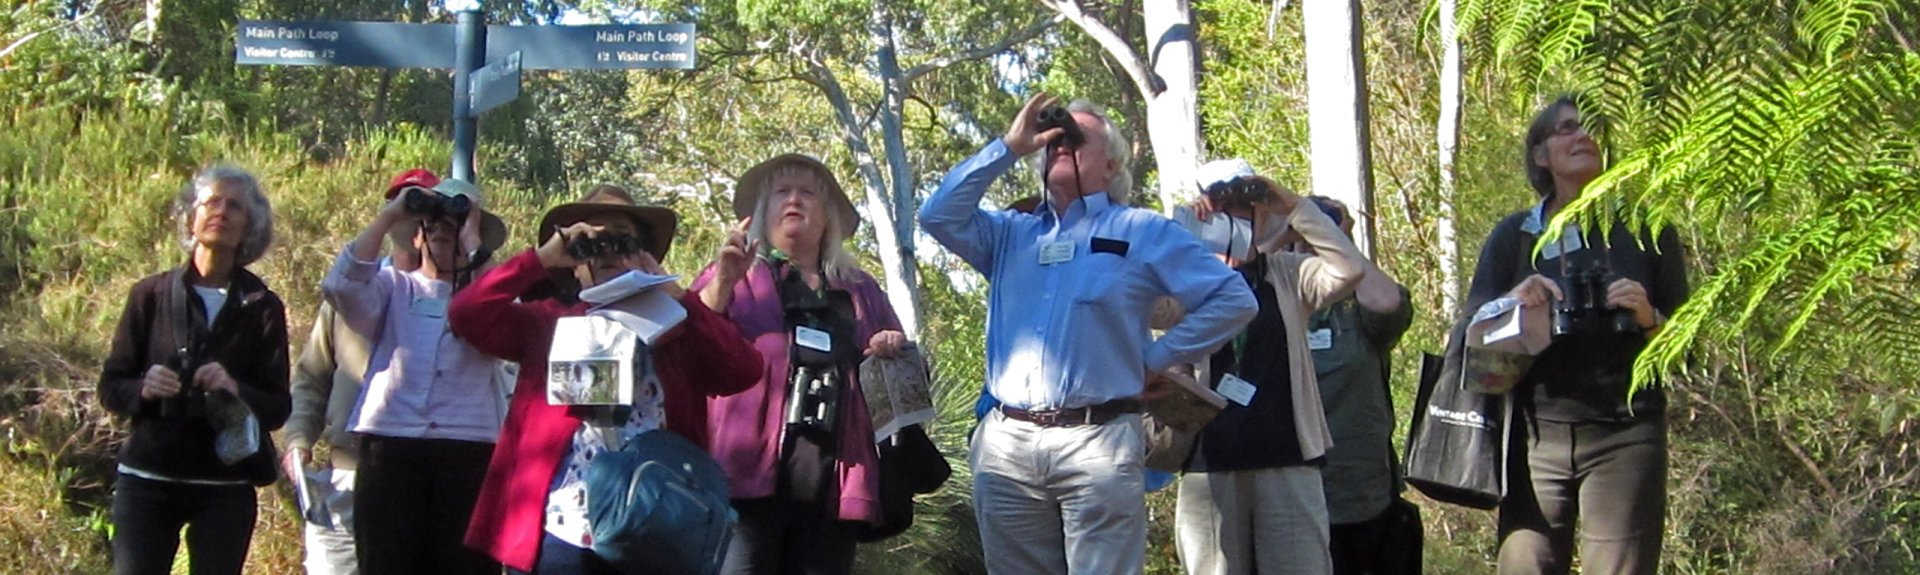 Birdwatchers at the Australian National Botanic Gardens